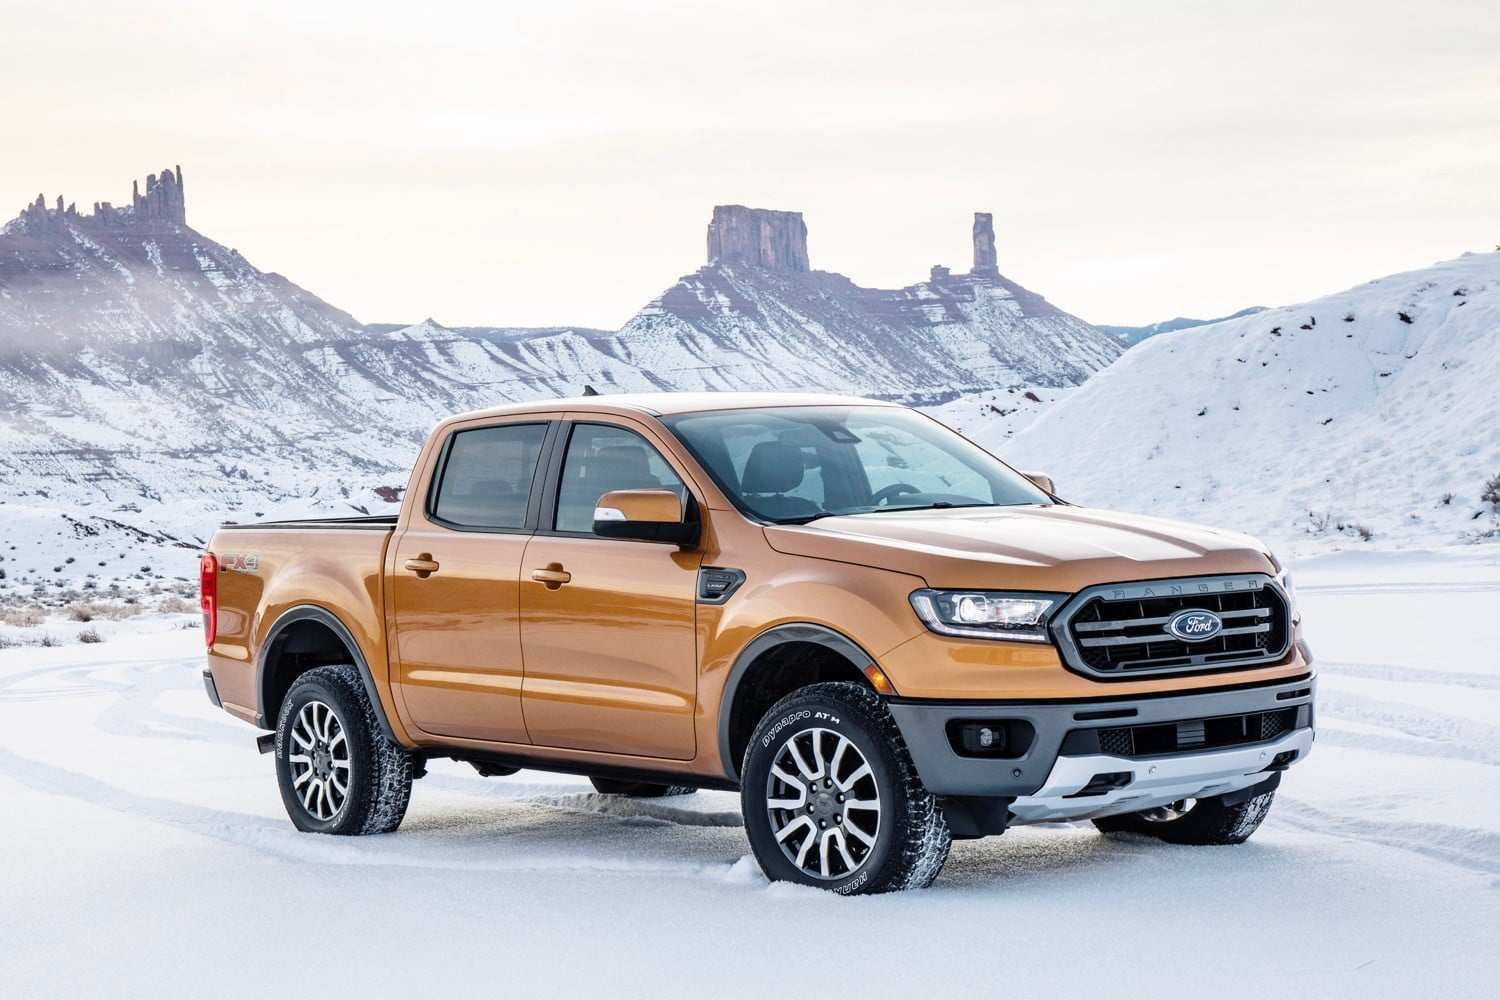 28 All New Ford Ranger 2020 Model Engine